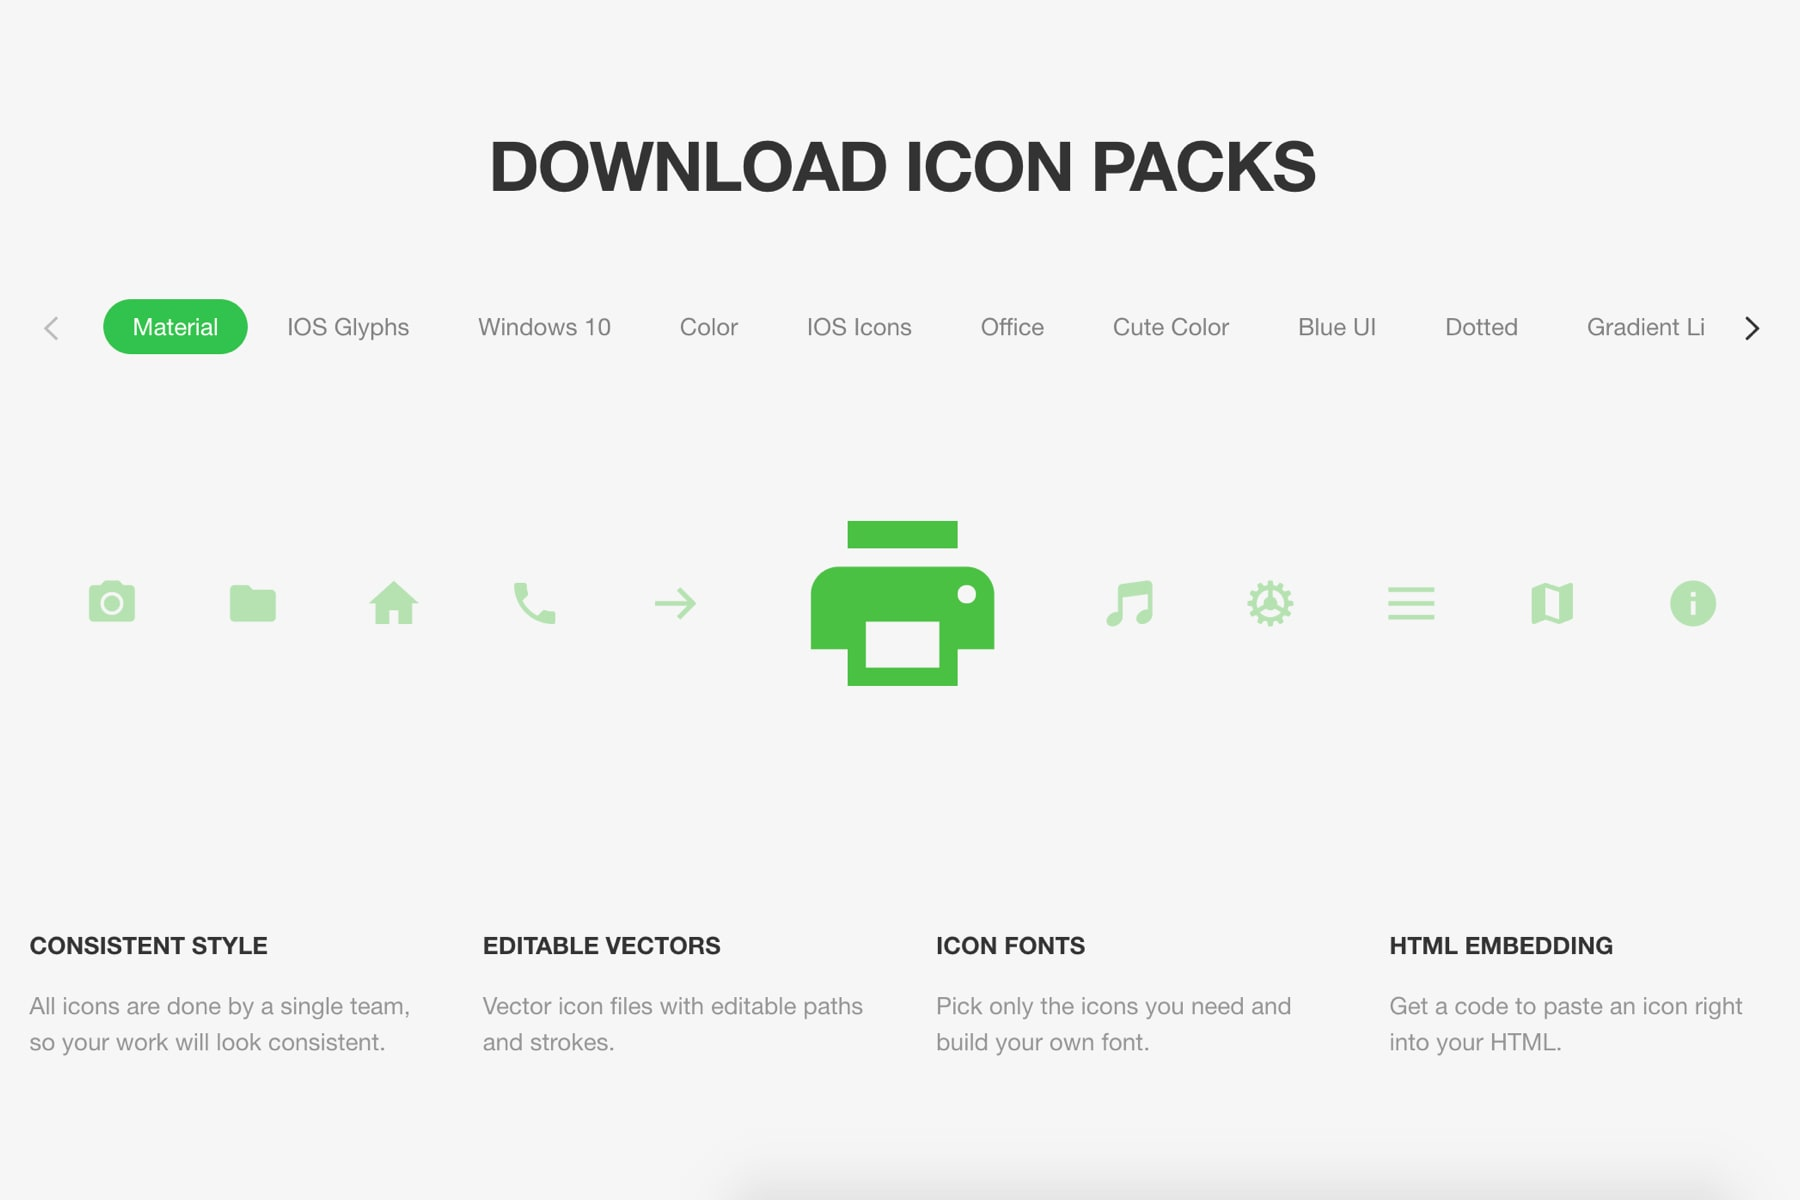 120K+ icons in different styles